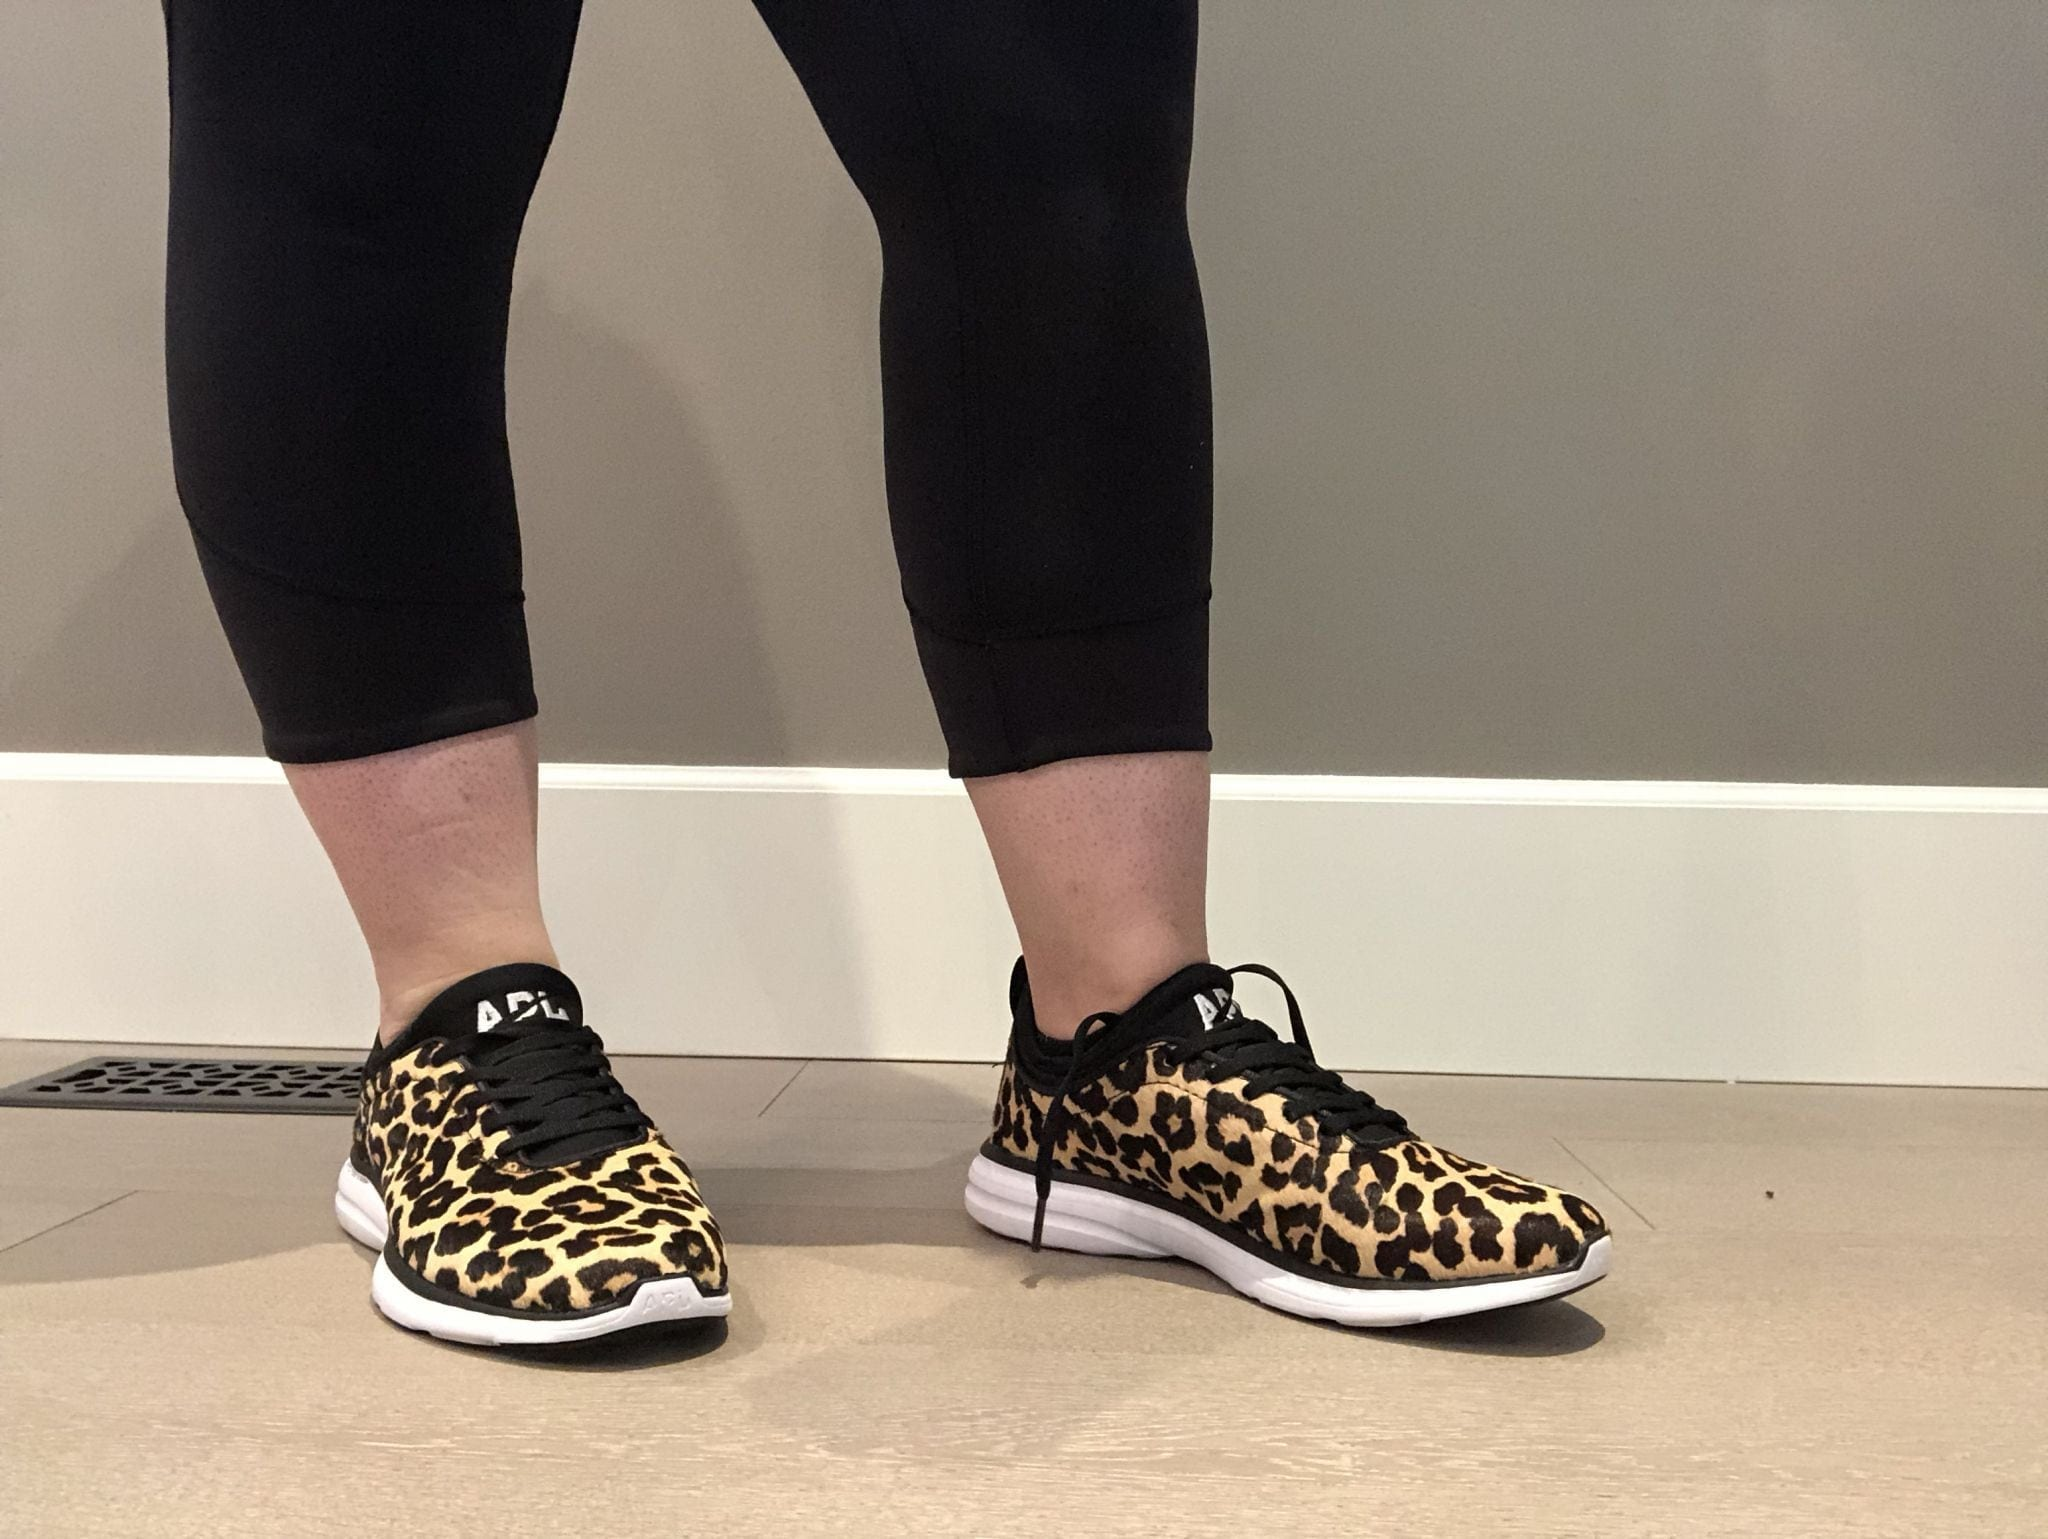 Athletic Propulsion Labs Phantom Leopard Black White Sneakers Calf Hair